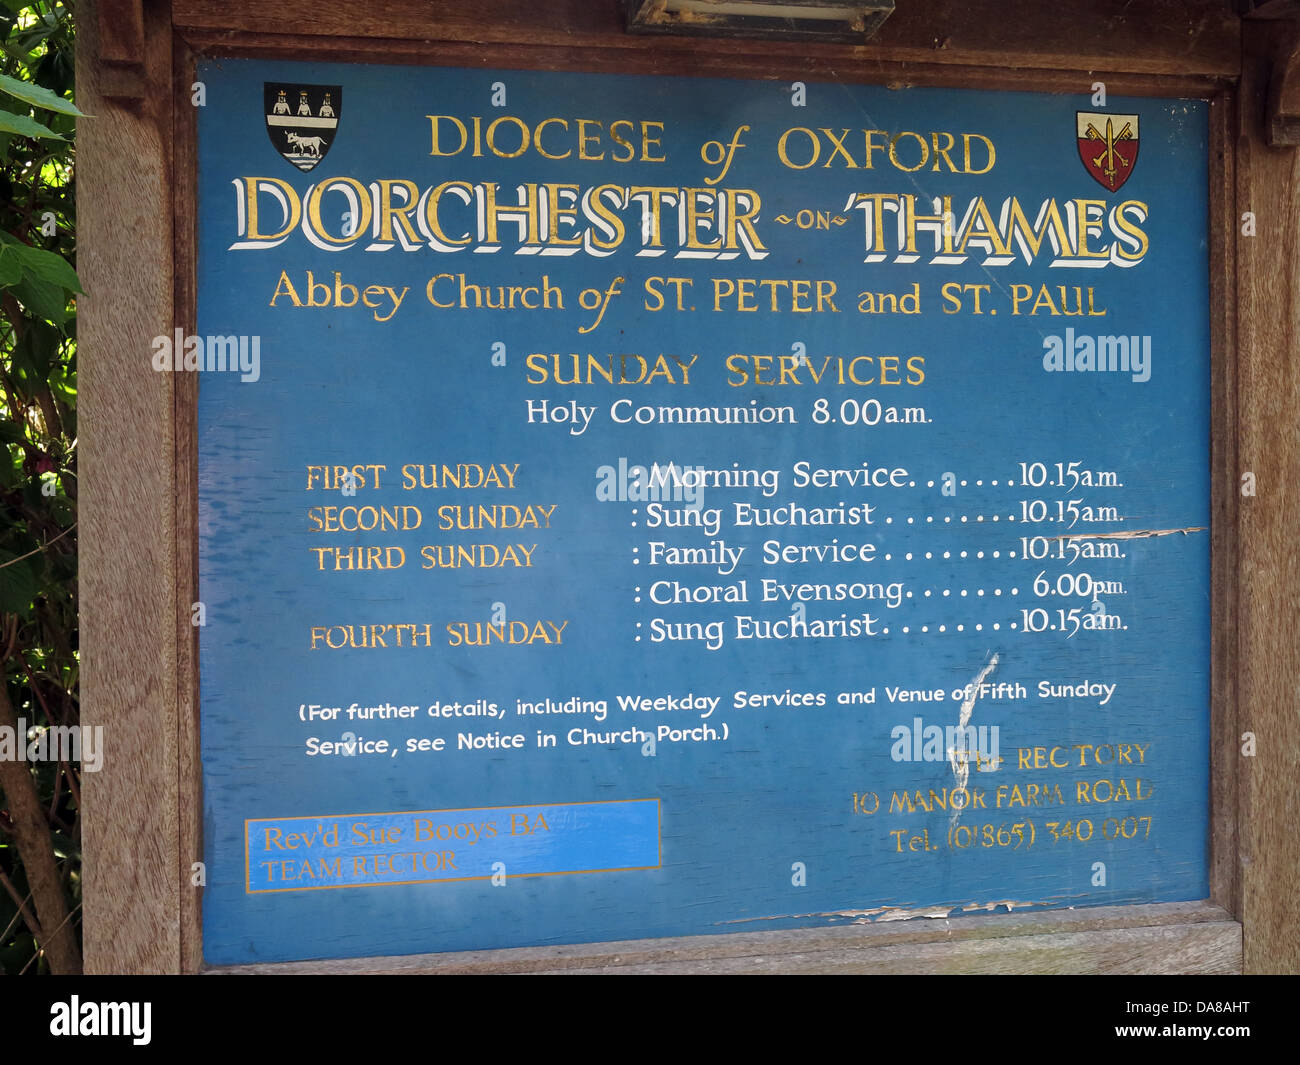 Beautiful,Dorchester,On,Thames,building,interior,of,St,Peter,&,St,Paul,HDR,oxen,oxford,oxfordshire,ancient,monument,front,sign,blue,opening,and,service,times,board,Gotonysmith monuments NT,Buy Pictures of,Buy Images Of